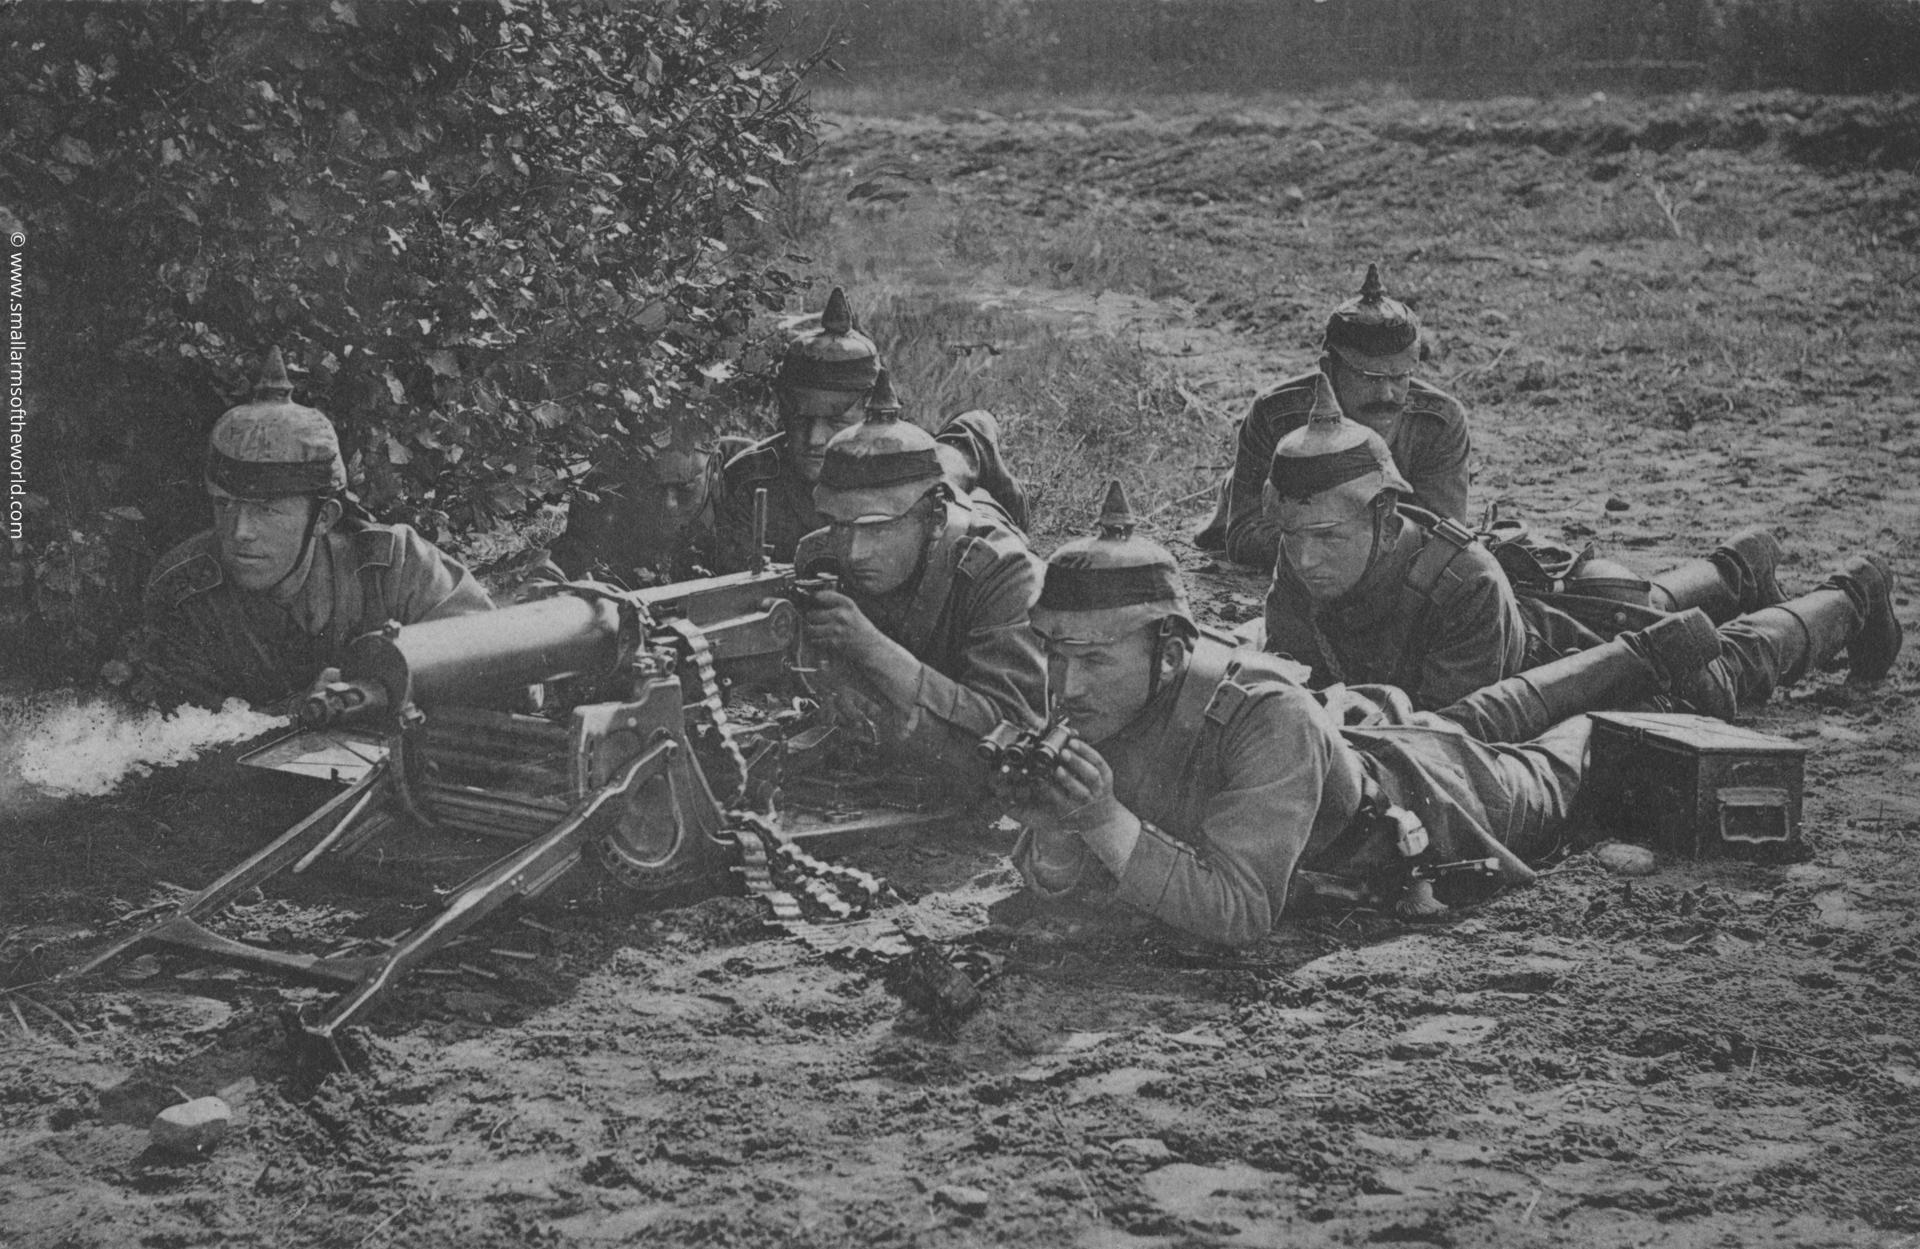 German machine gun crew with their Maxim MG08 machine gun.